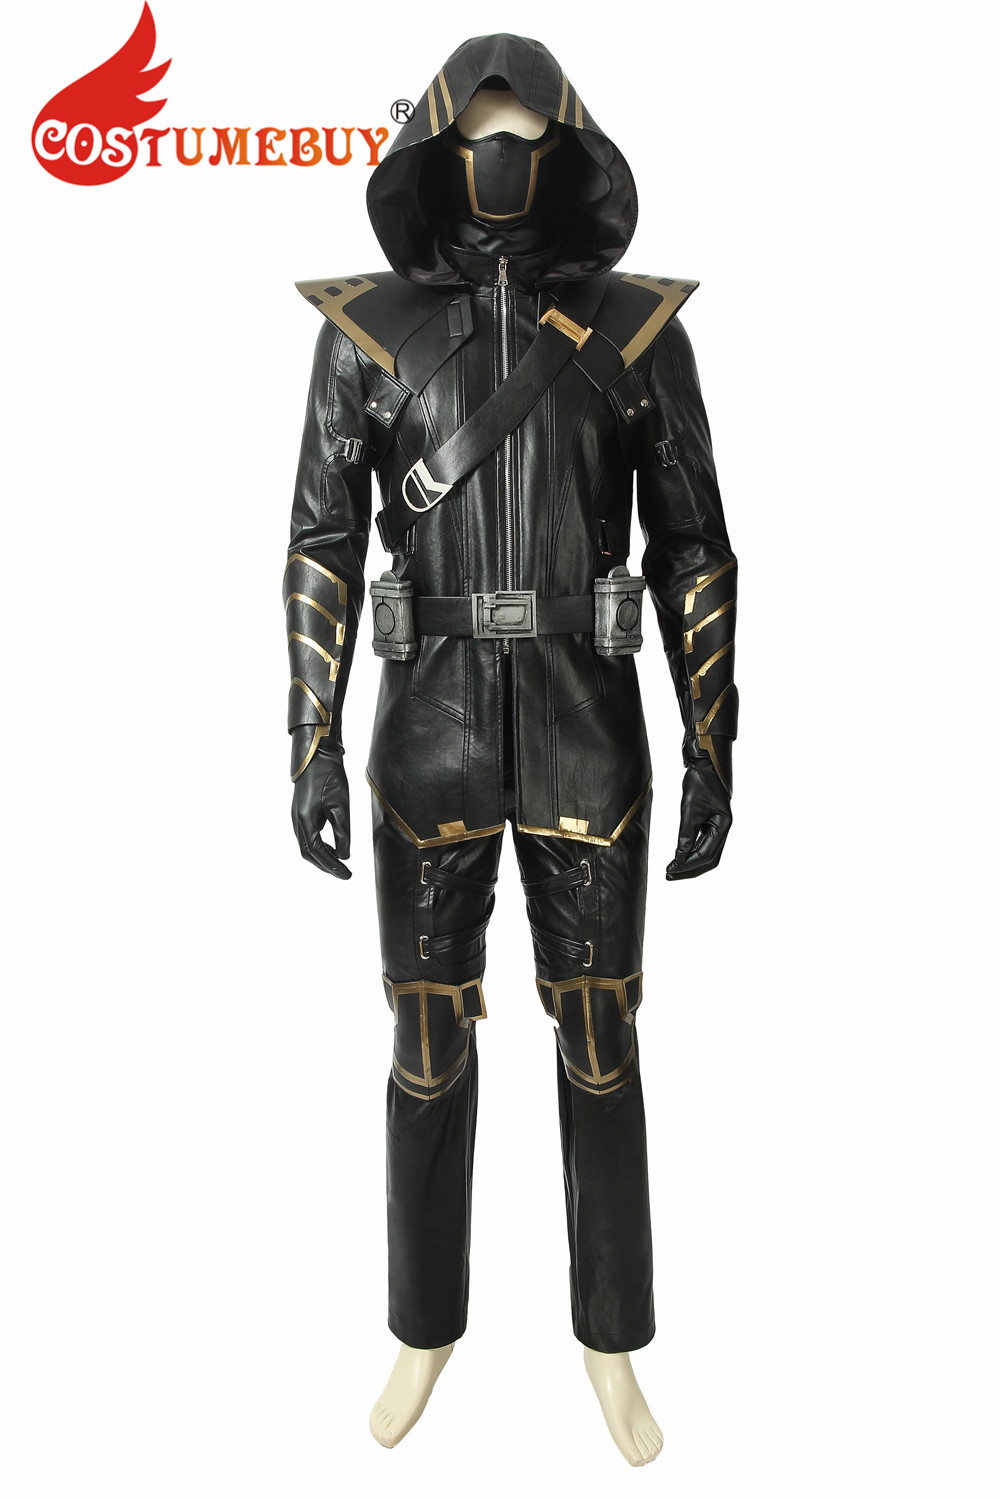 CostumeBuy Avengers Endgame Clinton Barton Hawkeye Ronin Cosplay Costume Adult Man Fancy Dress Full Suit Halloween